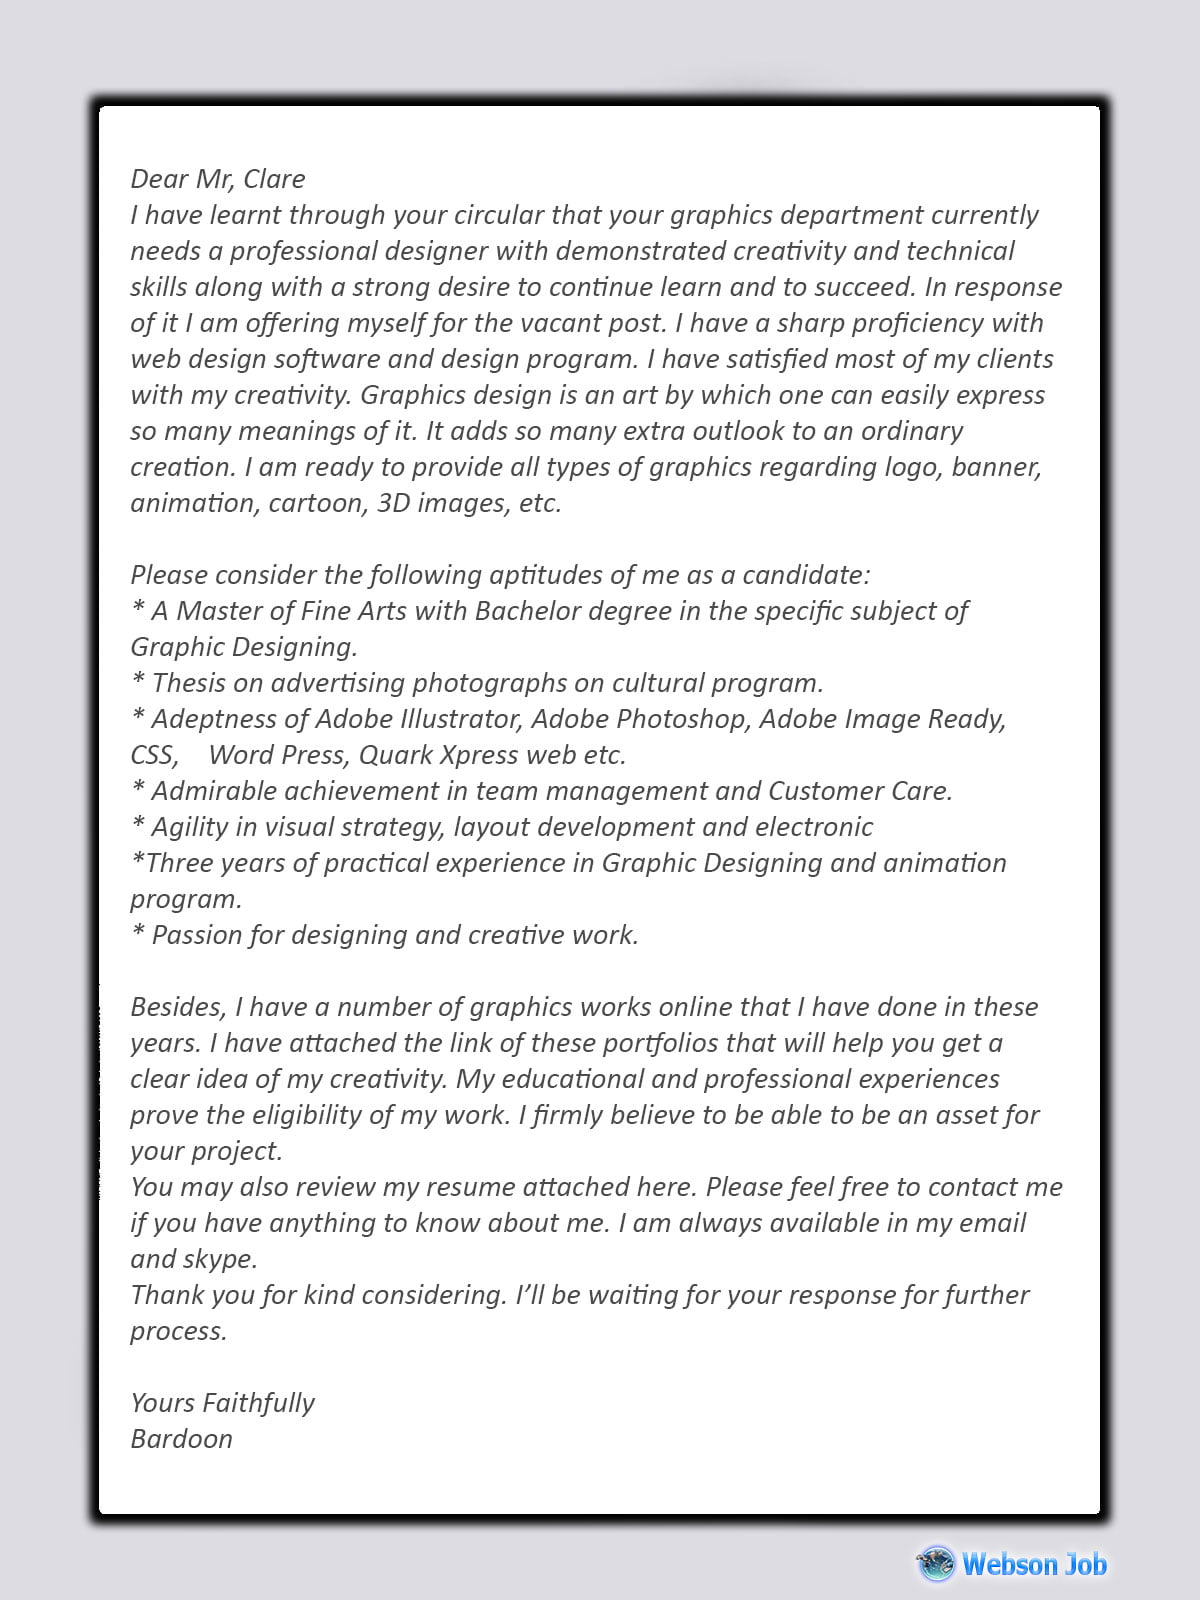 Graphics Designer Cover Letter Sample, Example and Format